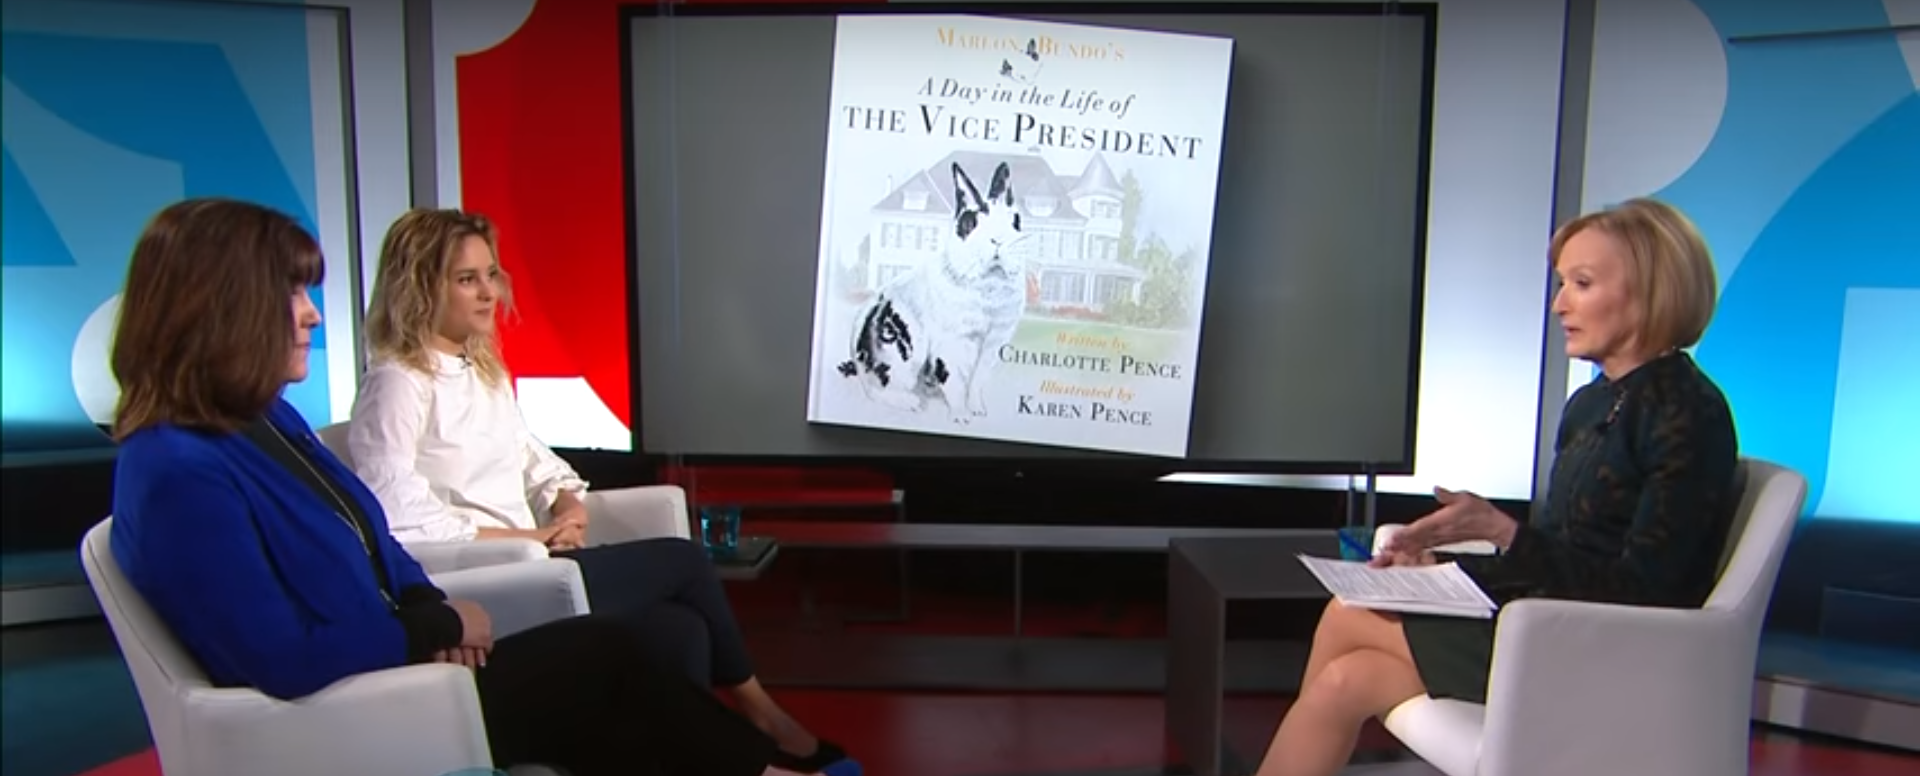 "Pictured are Karen and Charlotte Pence discussing their book, ""Marlon Bundo's Day in the Life of the Vice President."" Screenshot/ YouTube/PBSNewsHour"